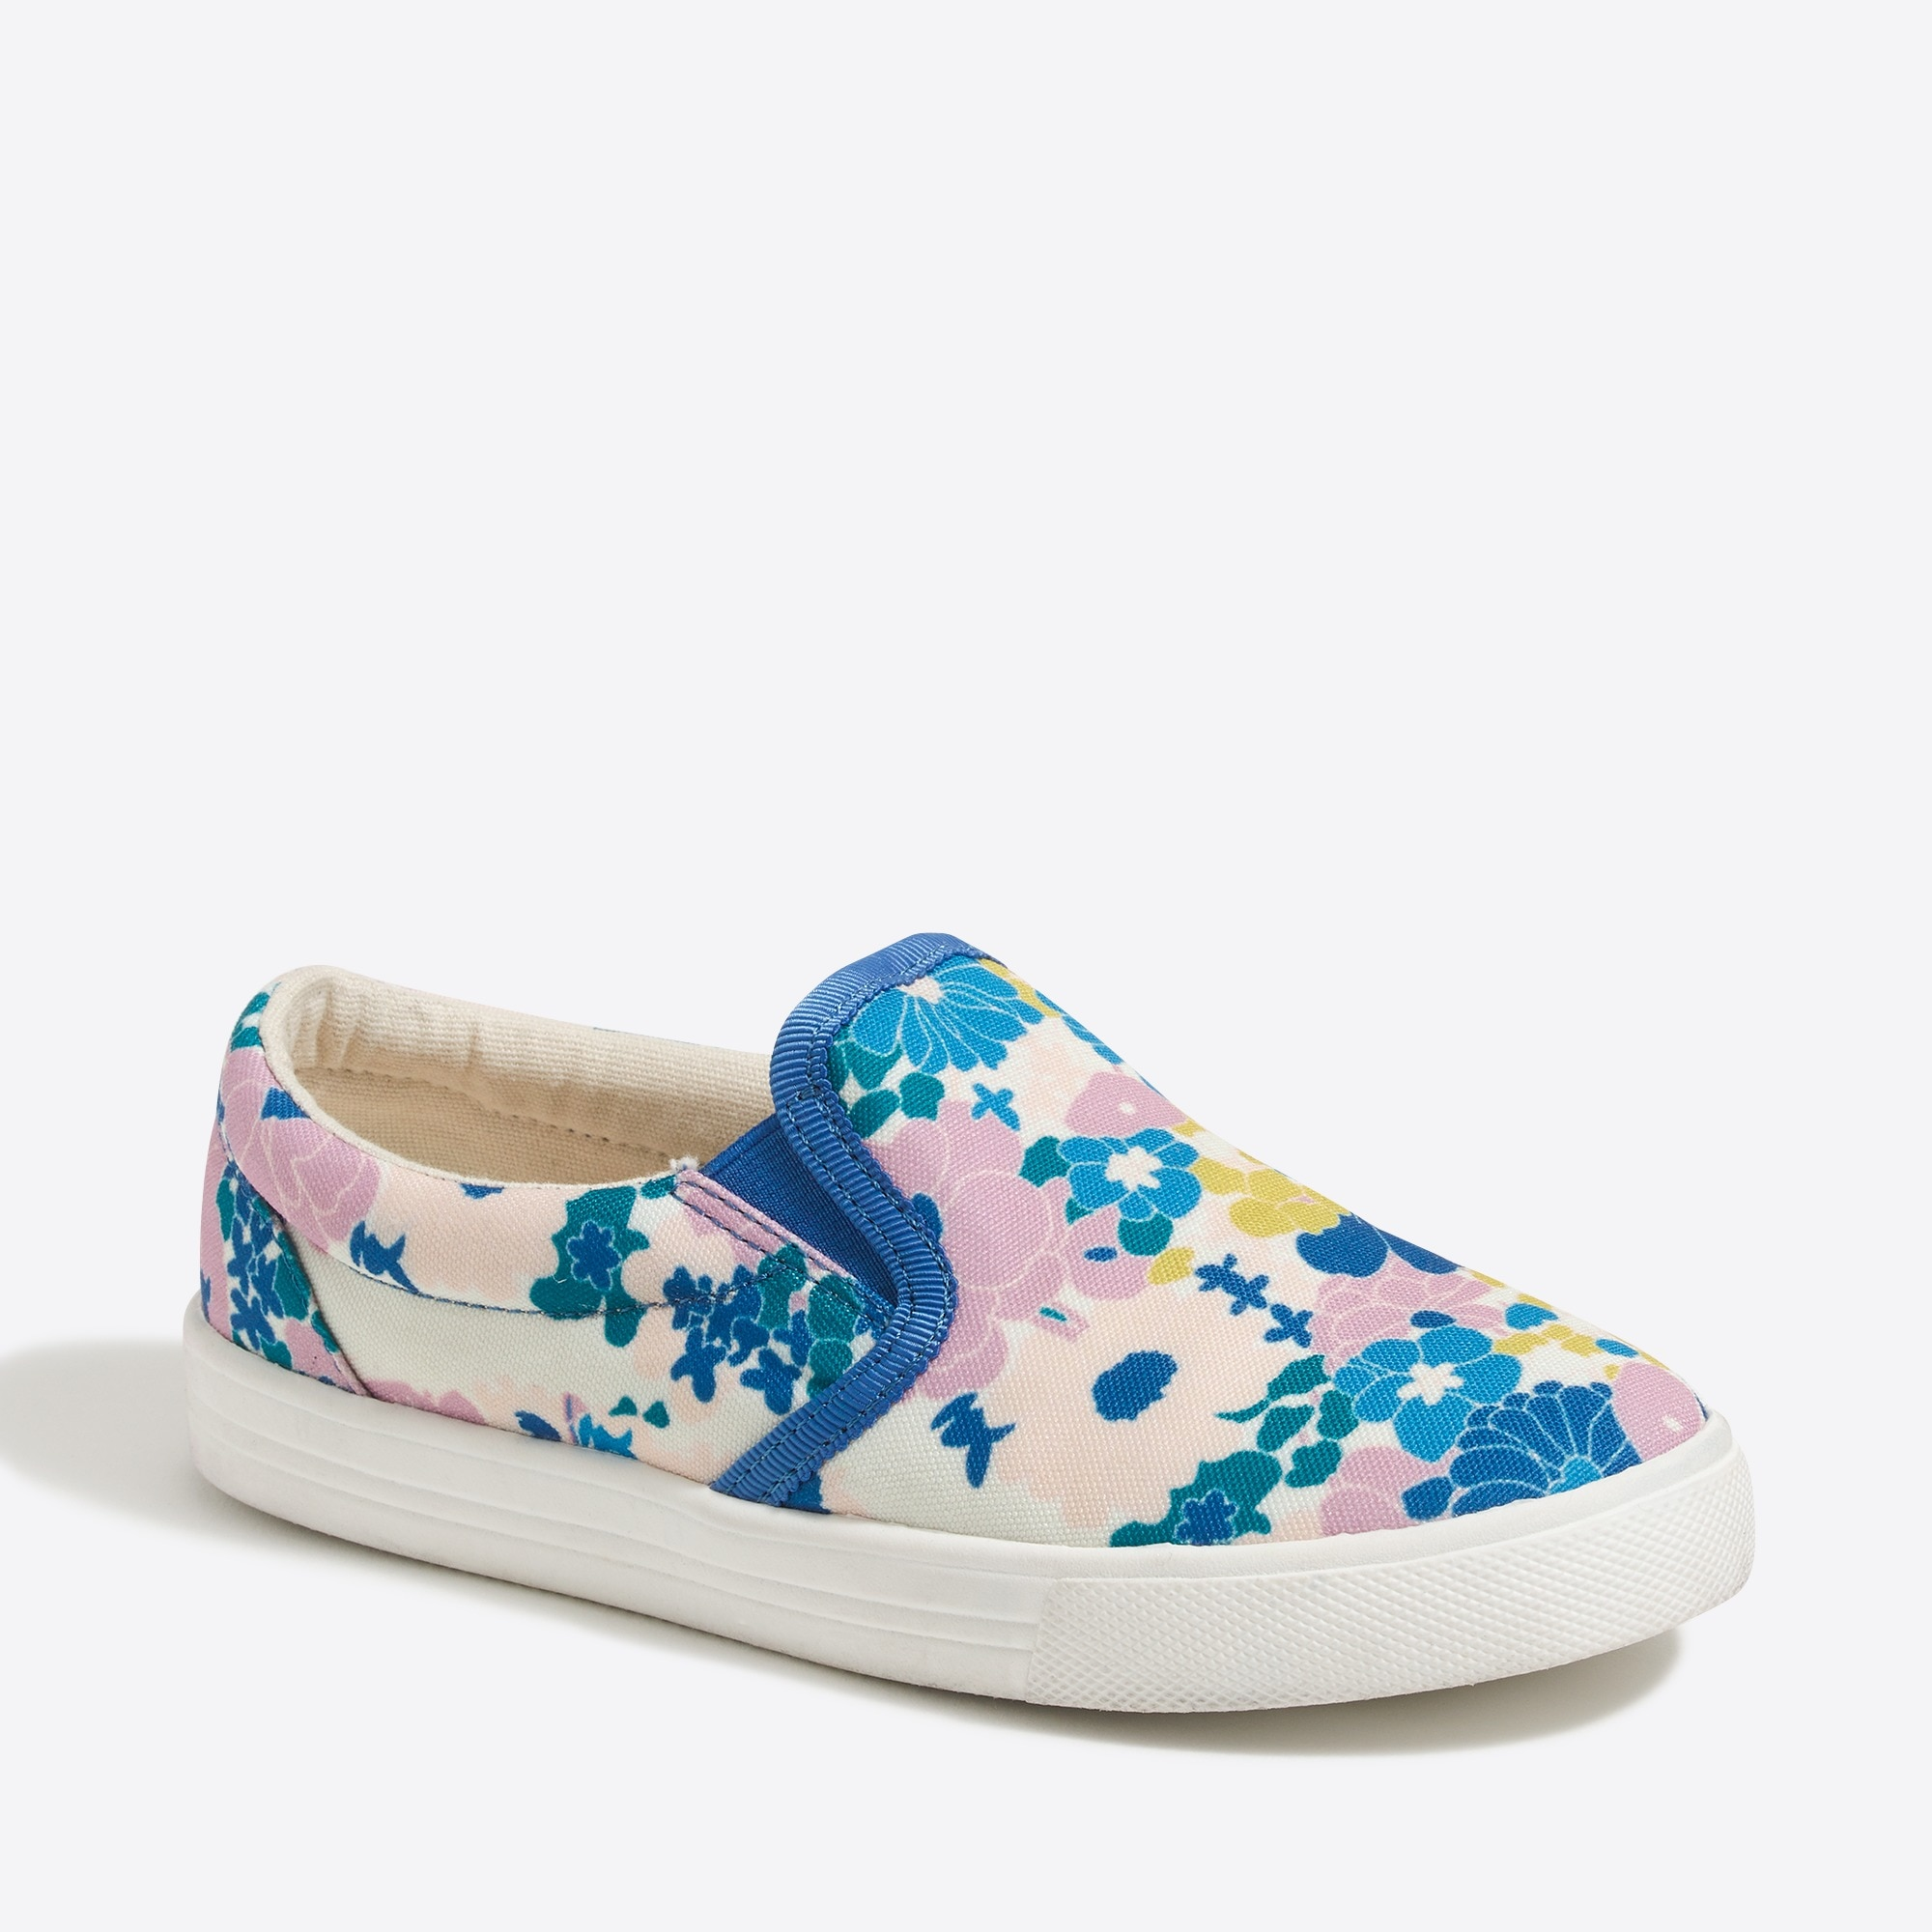 Image 1 for Girls' canvas slip-on sneakers